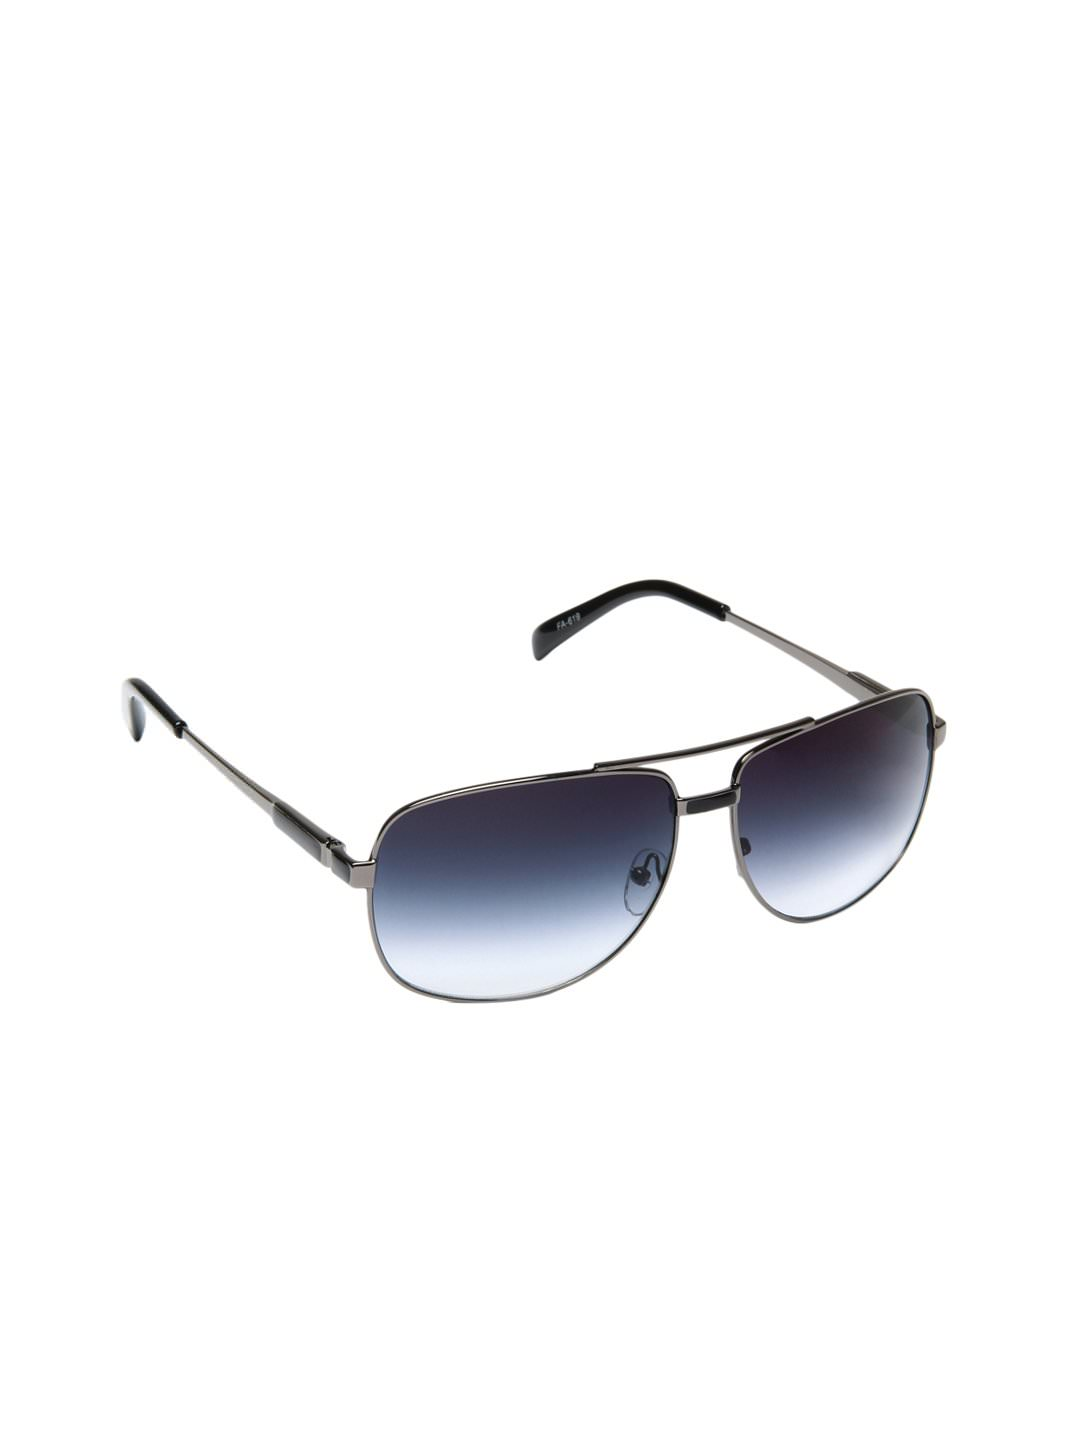 Farenheit Unisex Lively Sunglasses at Rs.999